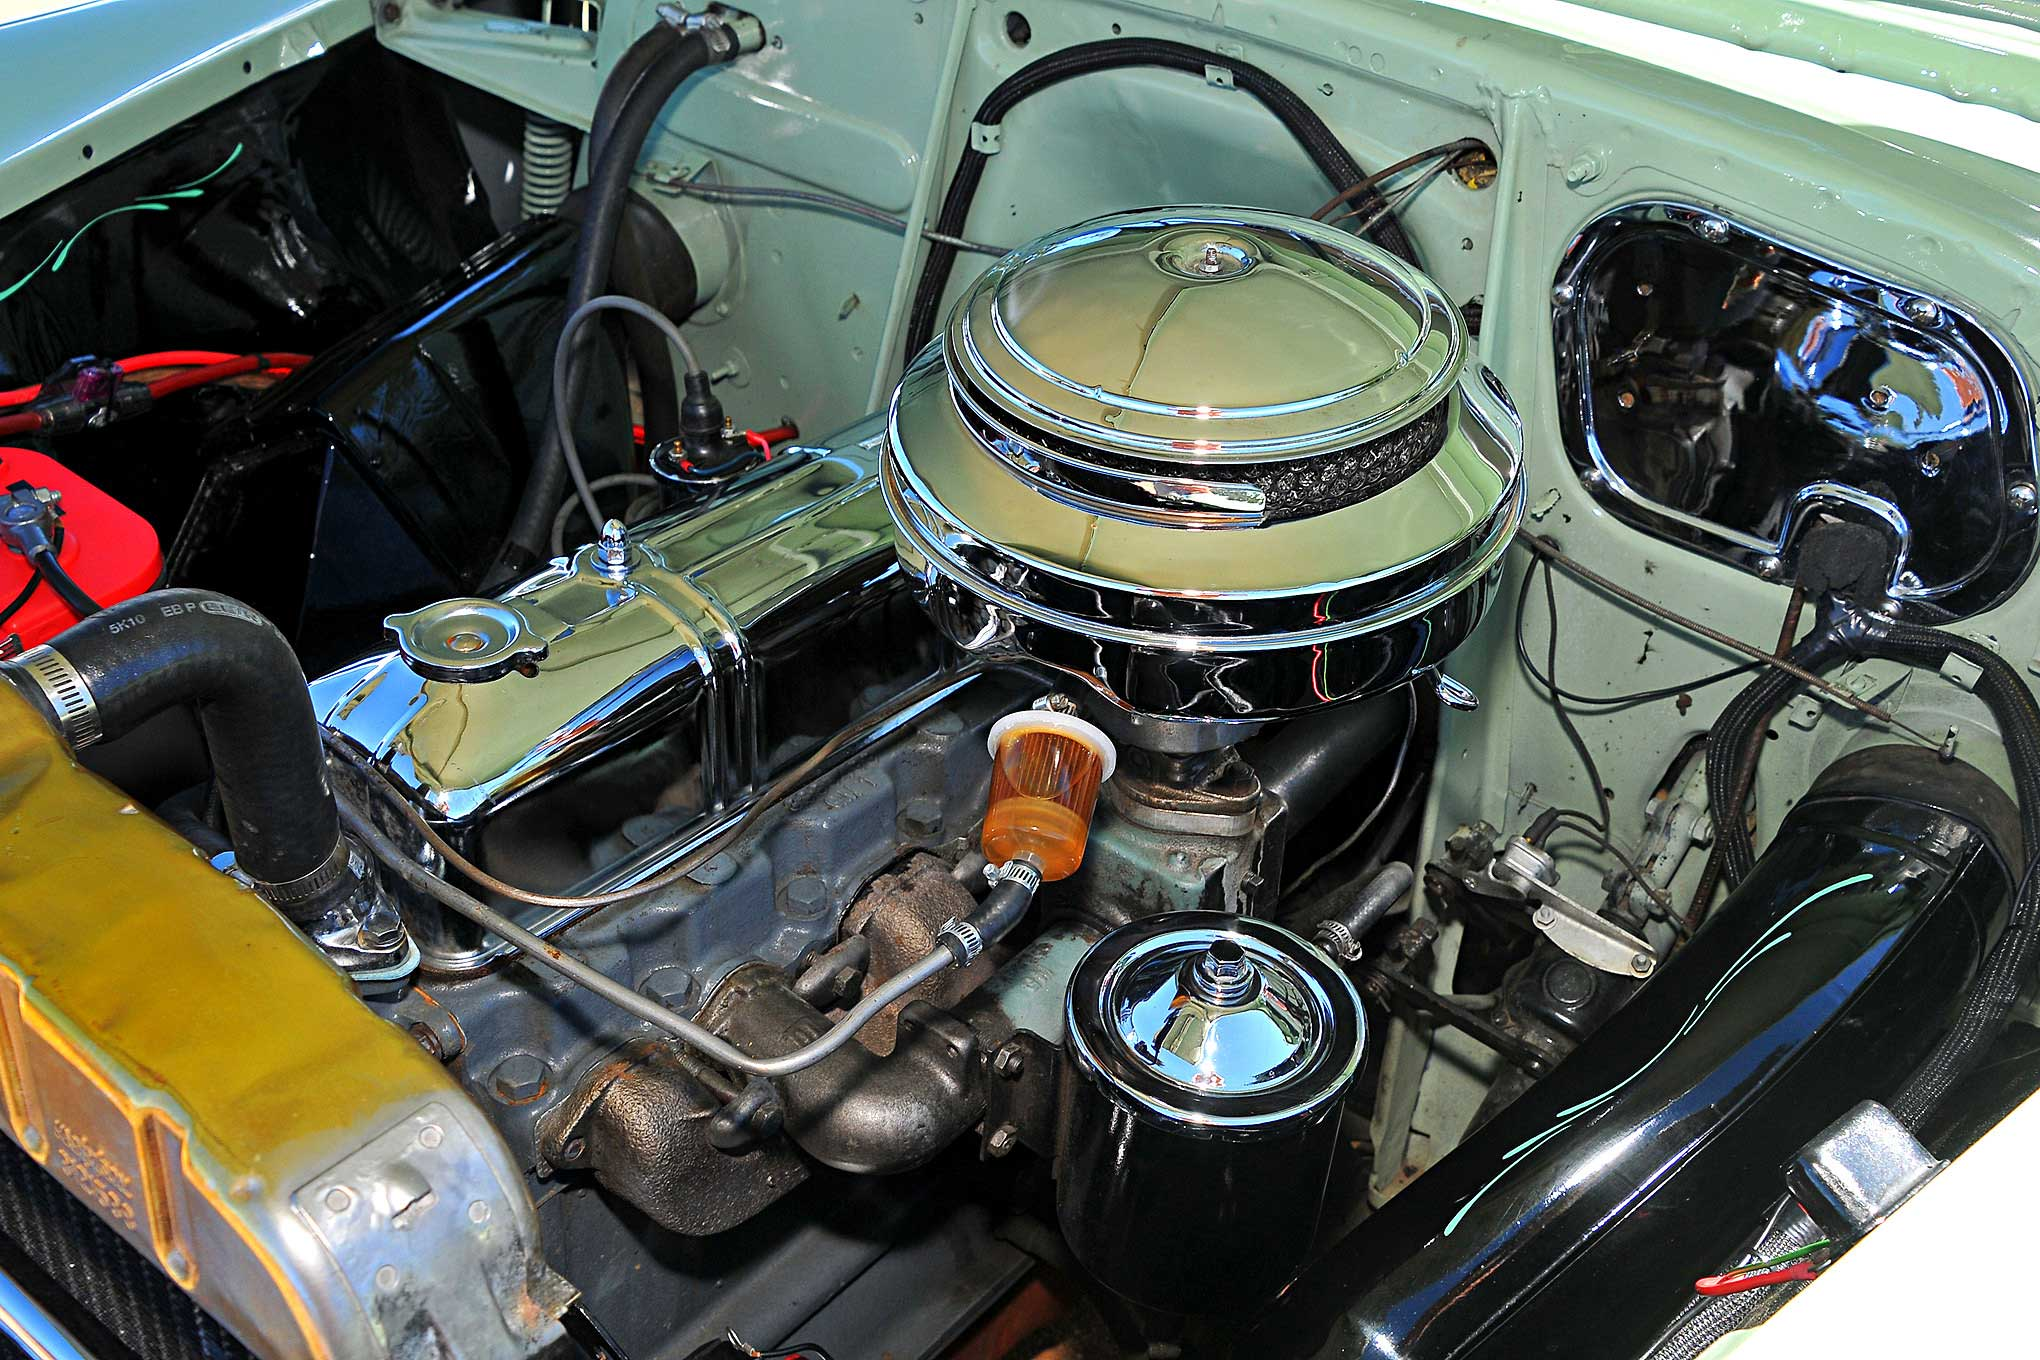 1950 Chevrolet Deluxe 235 Straight Six Engine